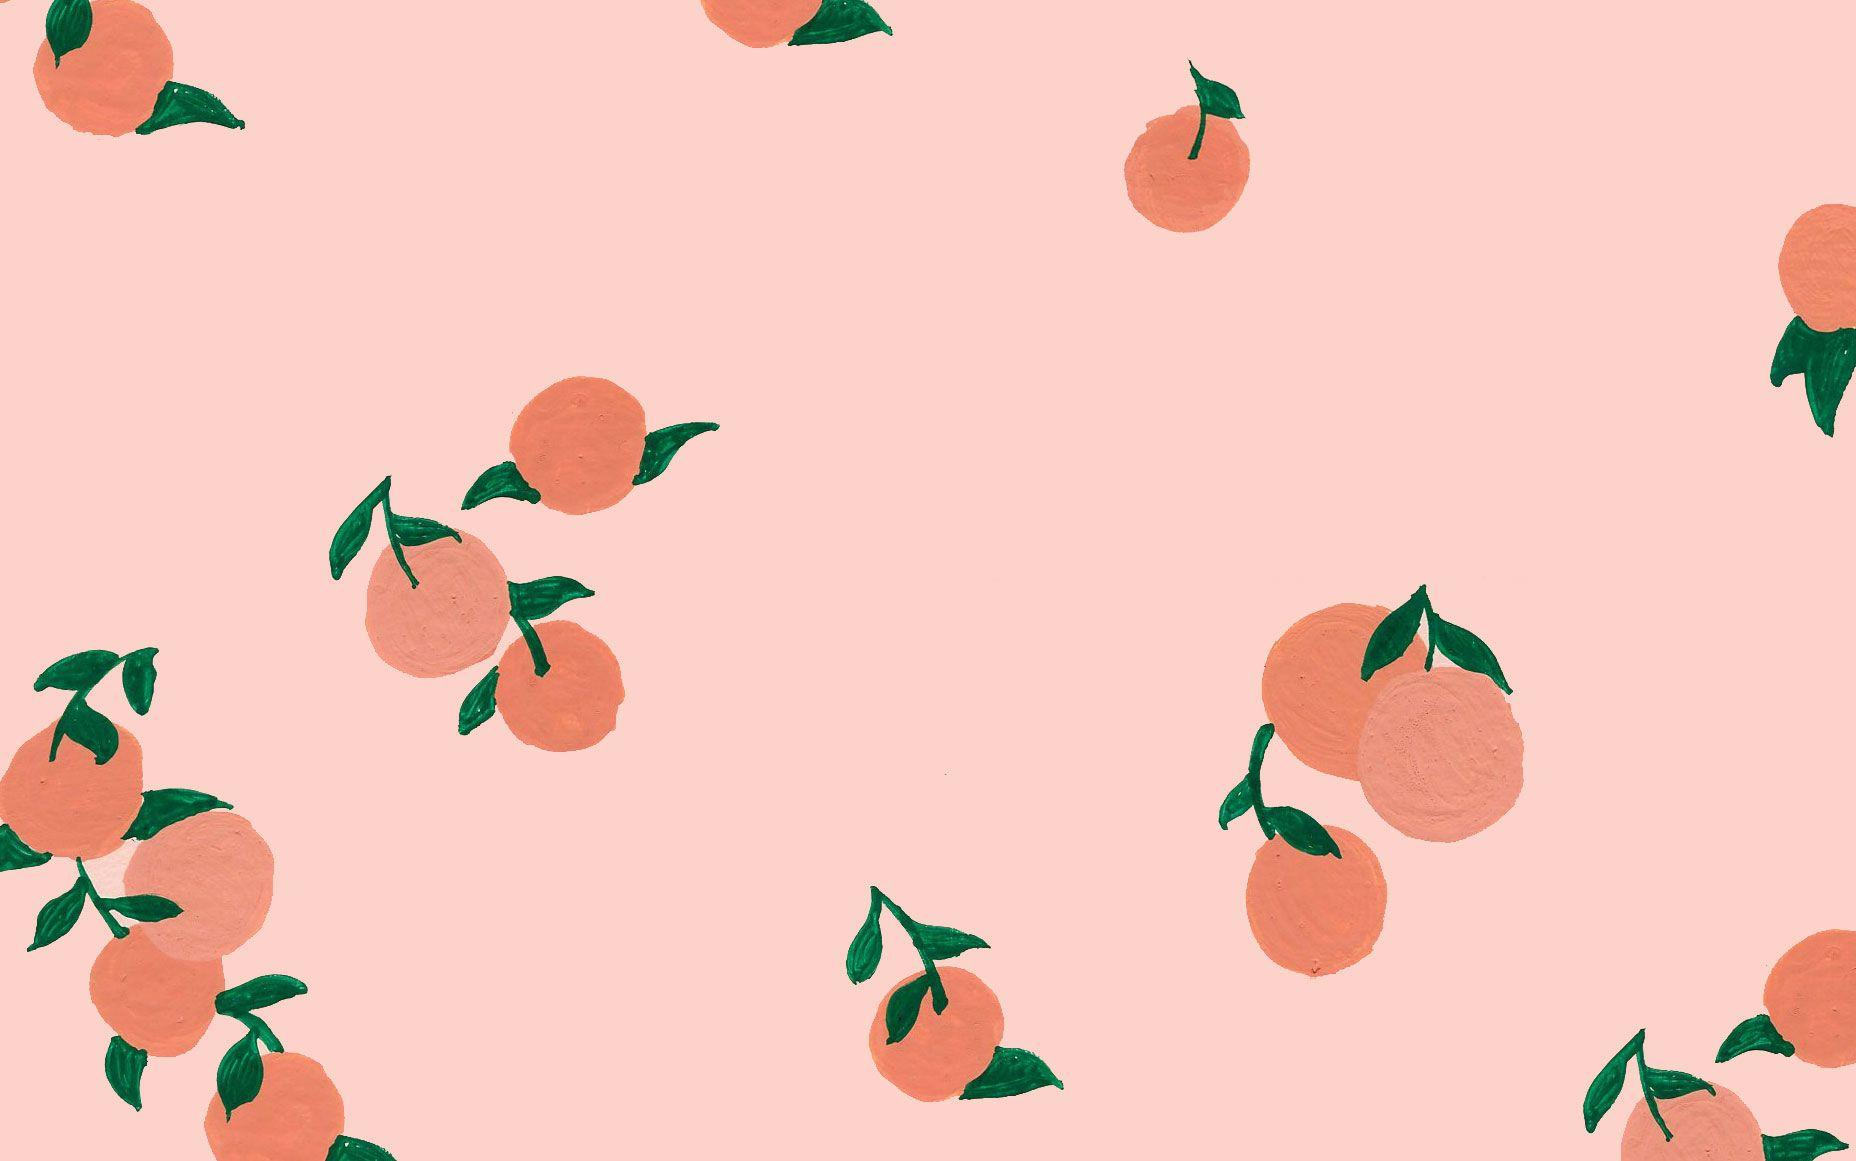 peach aesthetic computer wallpapers wallpaper cave peach aesthetic computer wallpapers